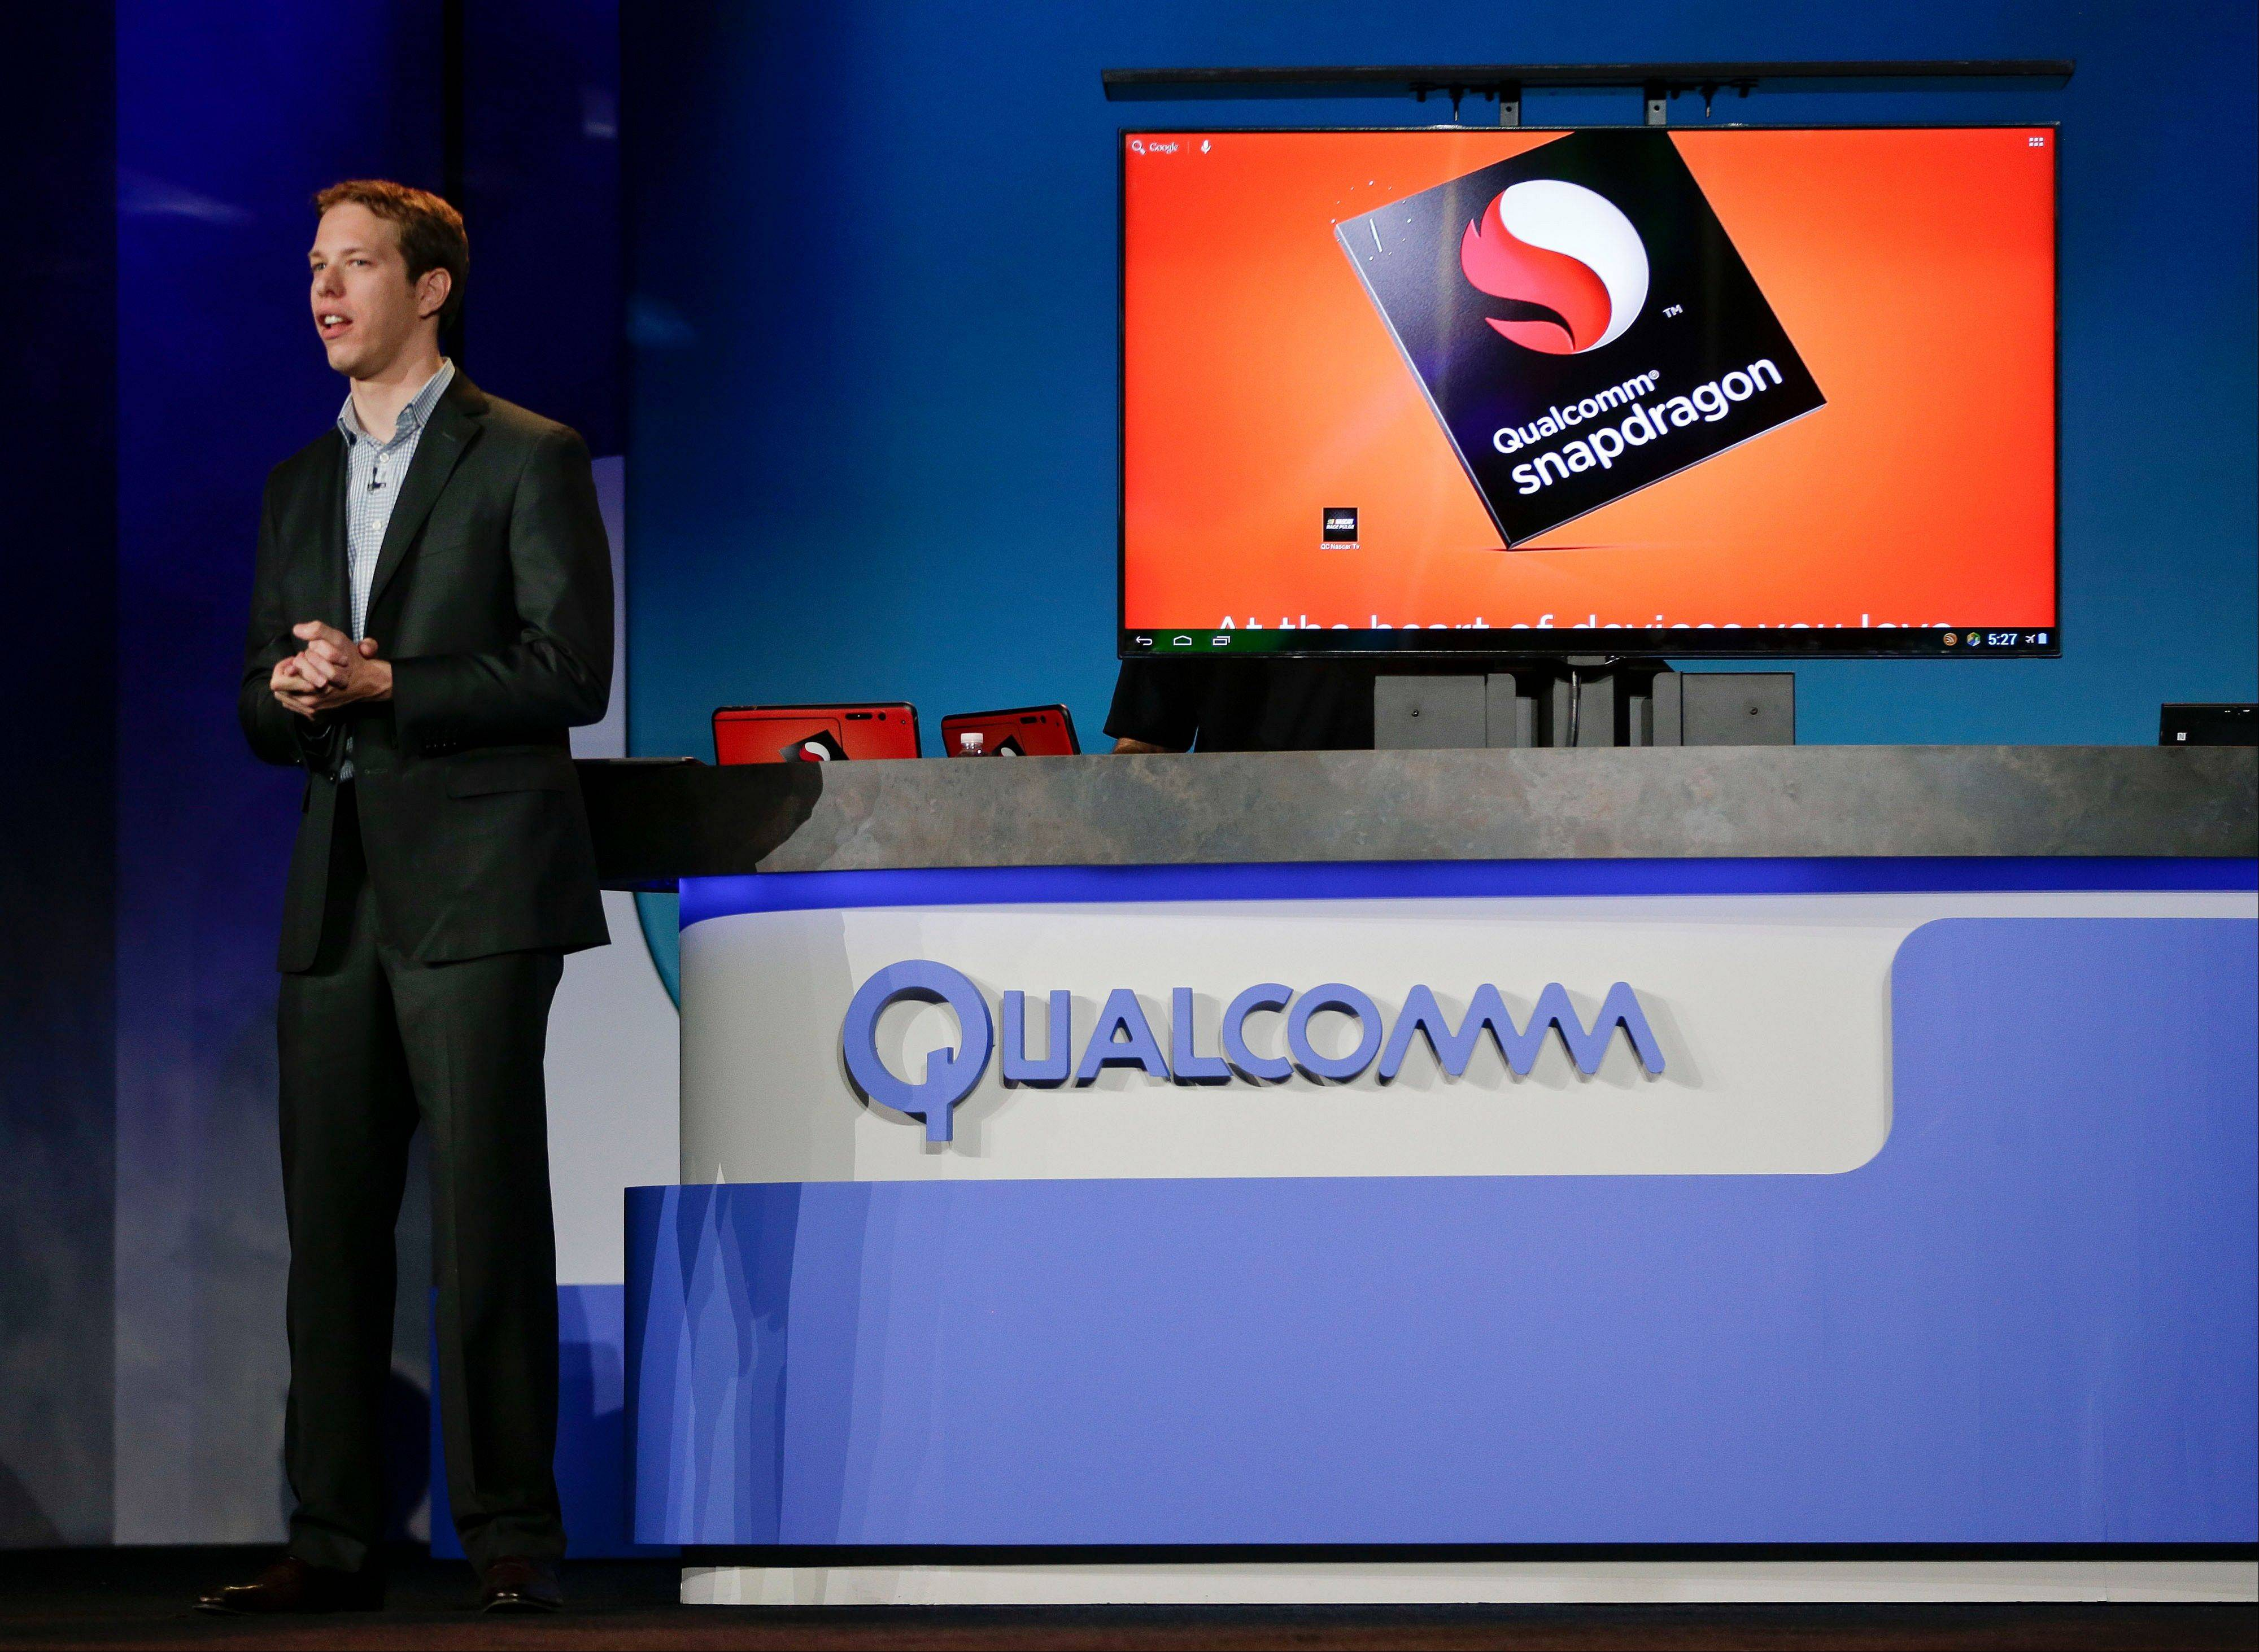 NASCAR Sprint Cup Series 2012 champion Brad Keselowski talks about Snapdragon technology used in mobile devices and applications for fans to use during the keynote address by Qualcomm CEO Paul Jacobs at the Consumer Electronics Show.